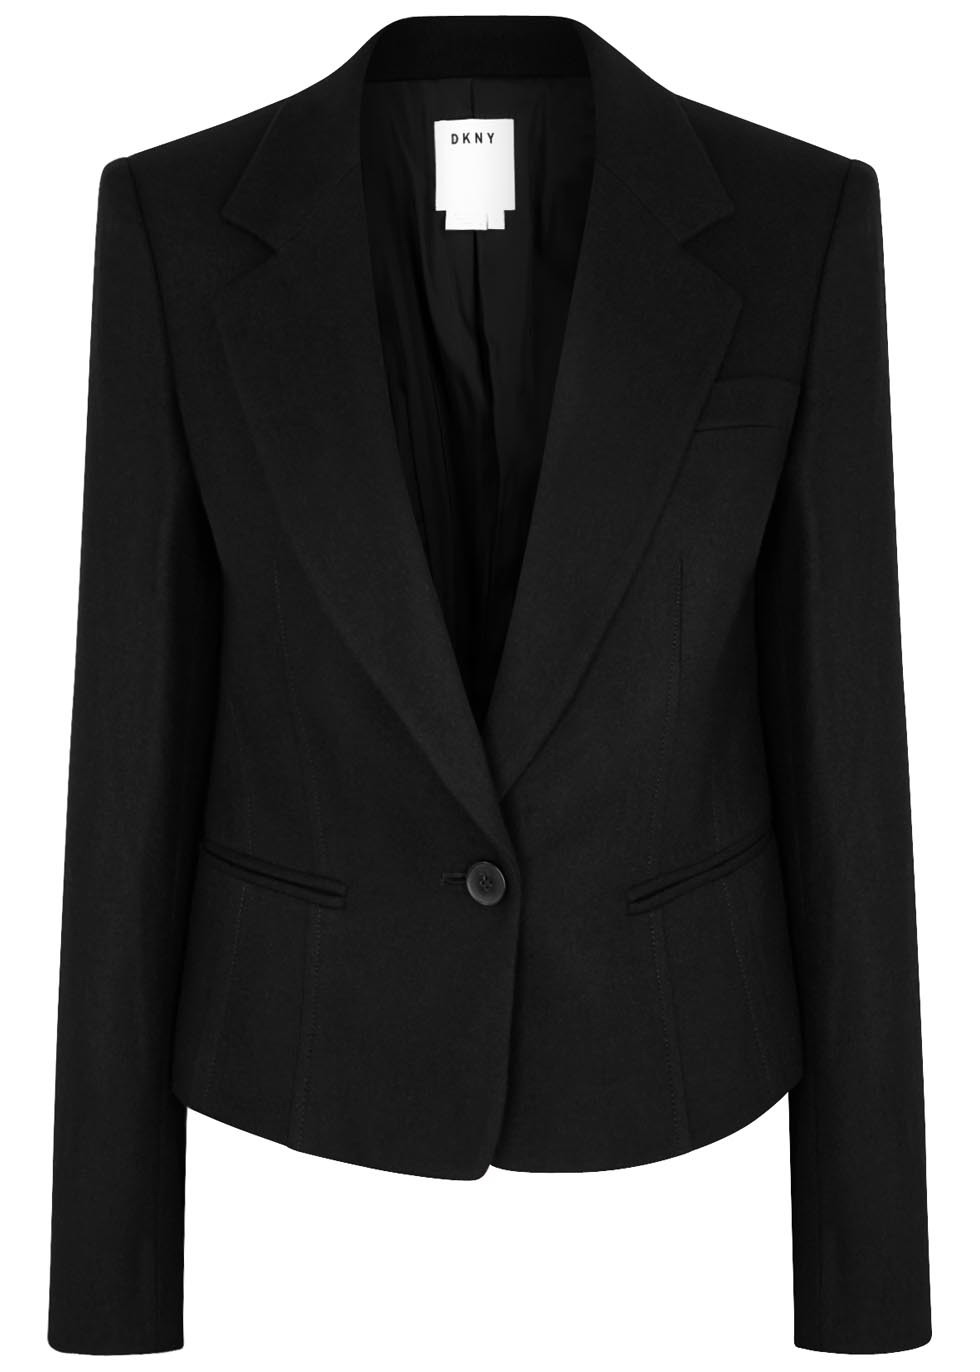 Black Cropped Wool Blend Blazer - pattern: plain; style: single breasted blazer; collar: standard lapel/rever collar; predominant colour: black; occasions: work; length: standard; fit: tailored/fitted; fibres: wool - mix; sleeve length: long sleeve; sleeve style: standard; collar break: medium; pattern type: fabric; texture group: woven light midweight; season: s/s 2016; wardrobe: investment